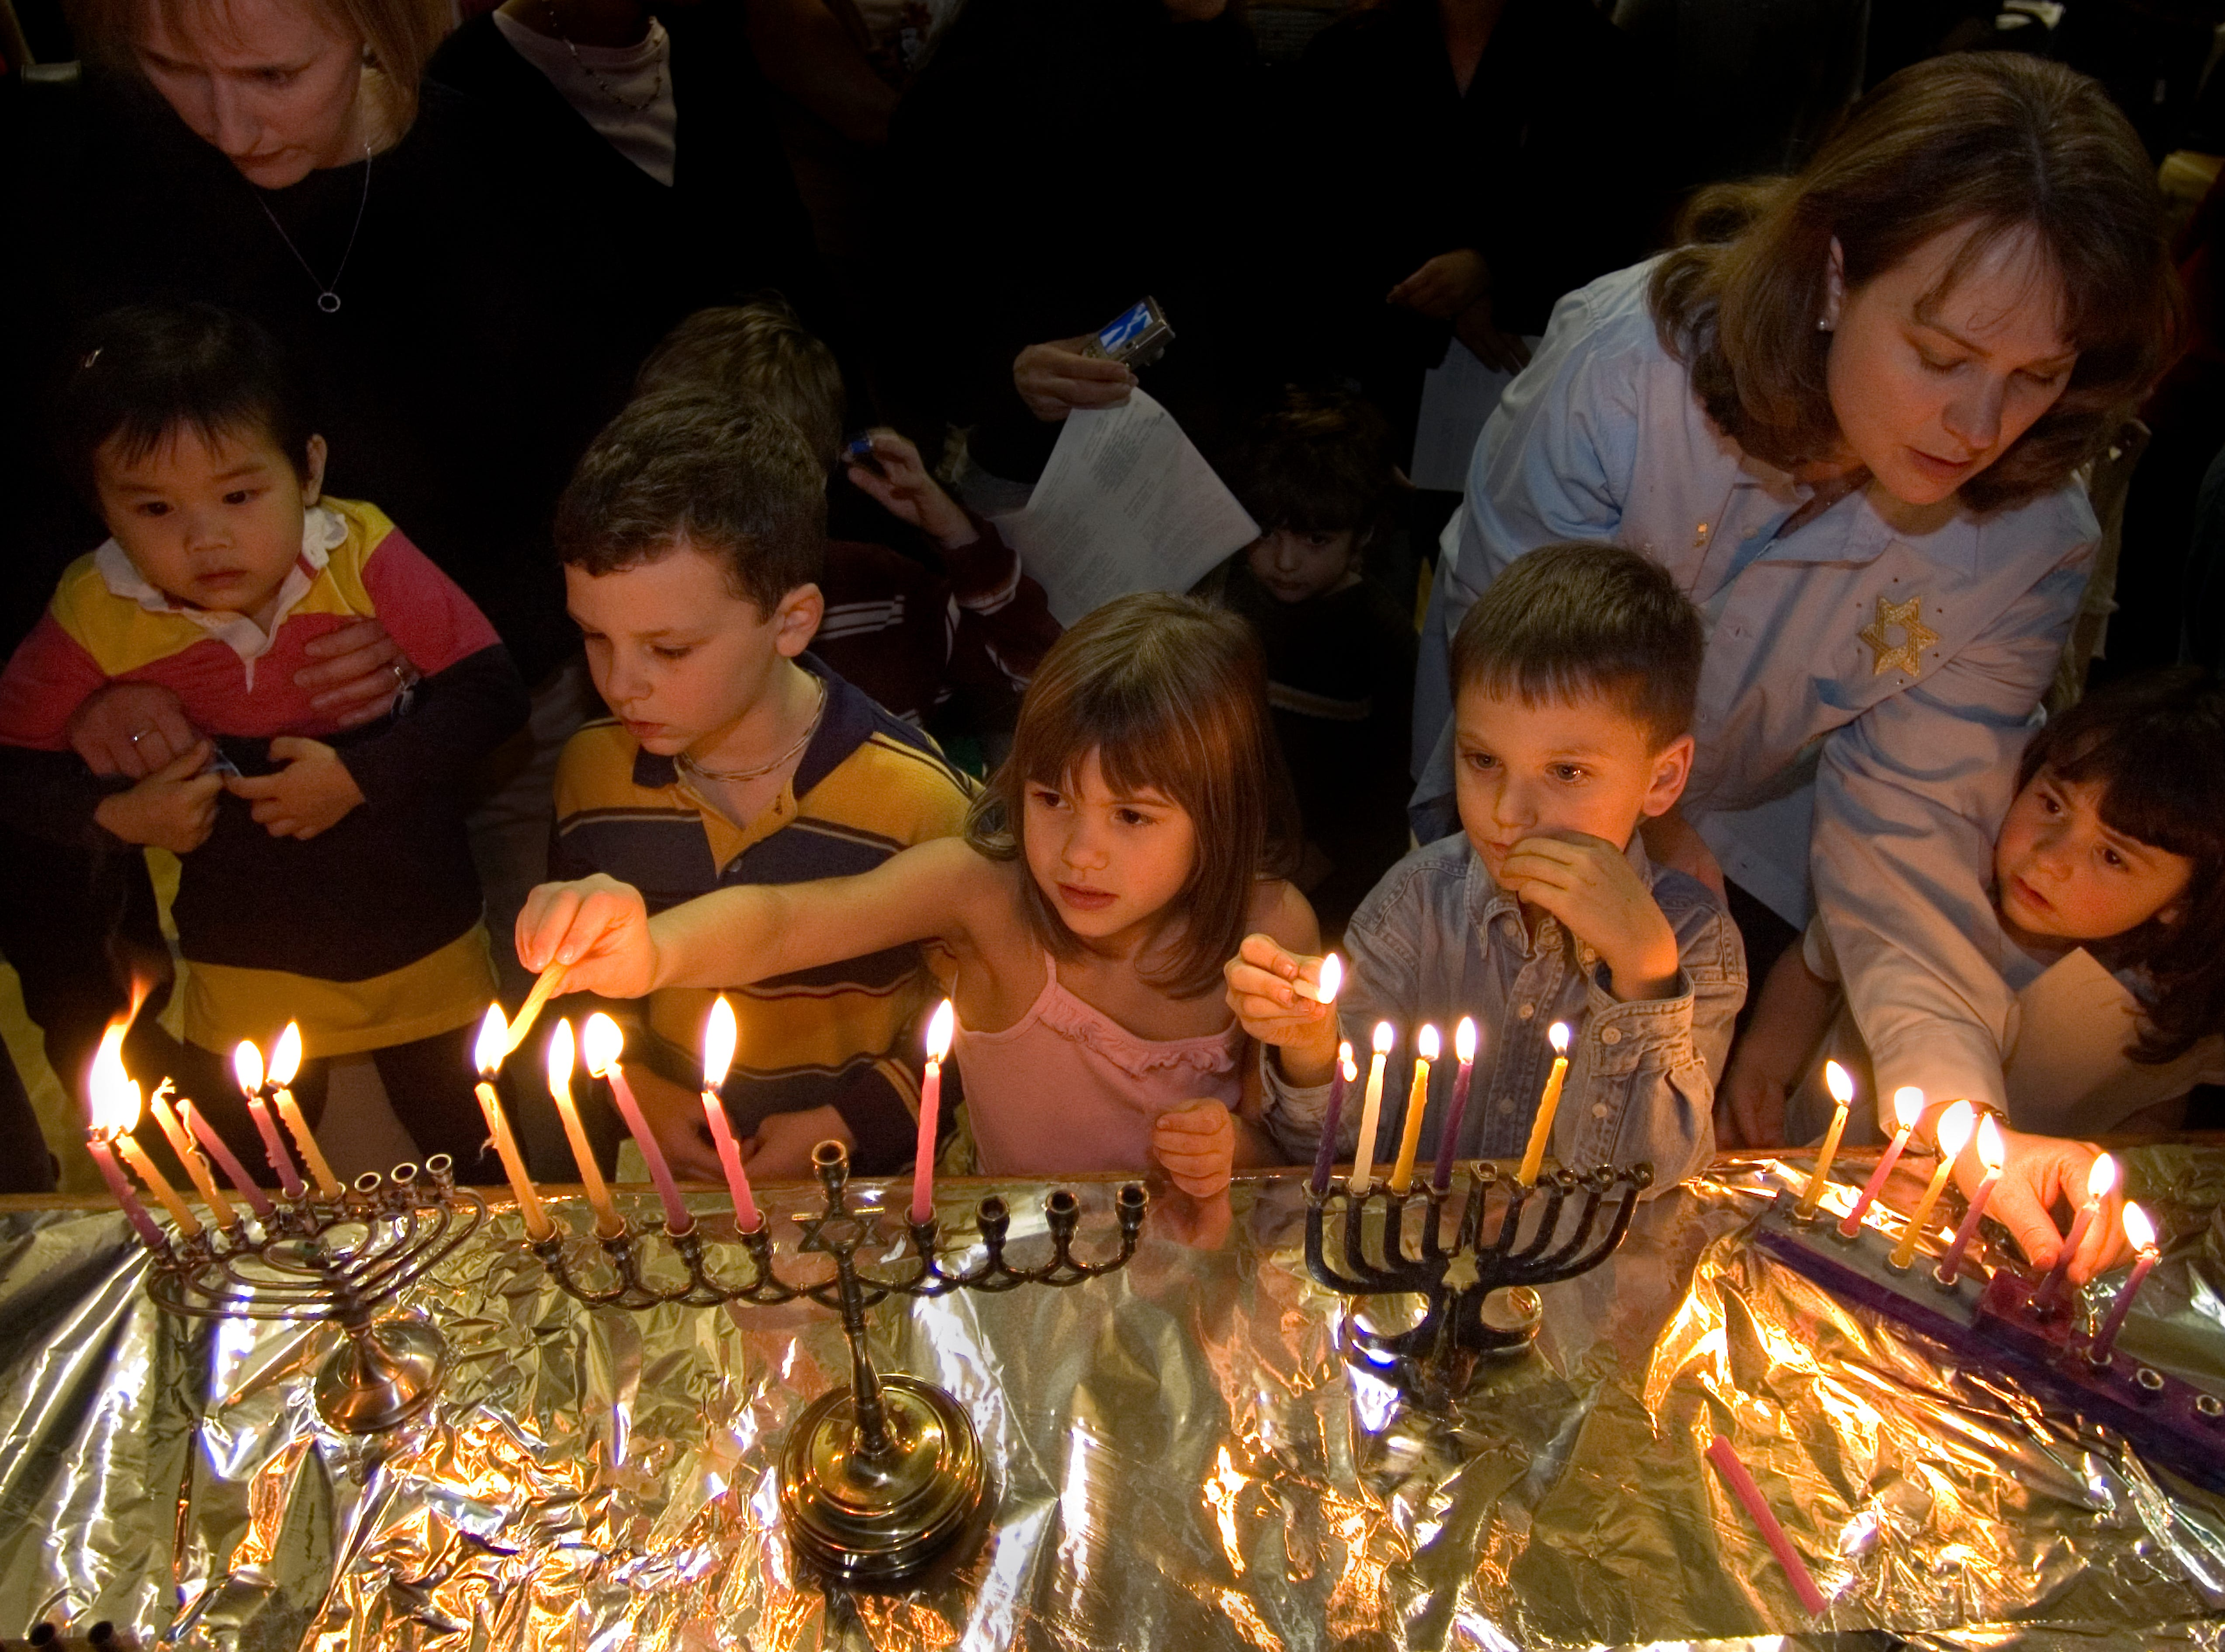 Lorie Hirsh holding her daughter Lily Hirsh, 2, Benjamin Gibbons, 7, Caroline Warman,6, Justen Bain, 6, Melissa Schweitzer and her daughter Lilli Schweitzer, 5, from left, light menorahs during Hanukkah at the Arnstein Jewish Community Center Wednesday. The lighting of the menorah is an important part of this Jewish celebration. Nearly, 2,200 years ago a rebel Jewish Army known as the Maccabees fought to maintain religious practices and the study of the Torah.12/21/06